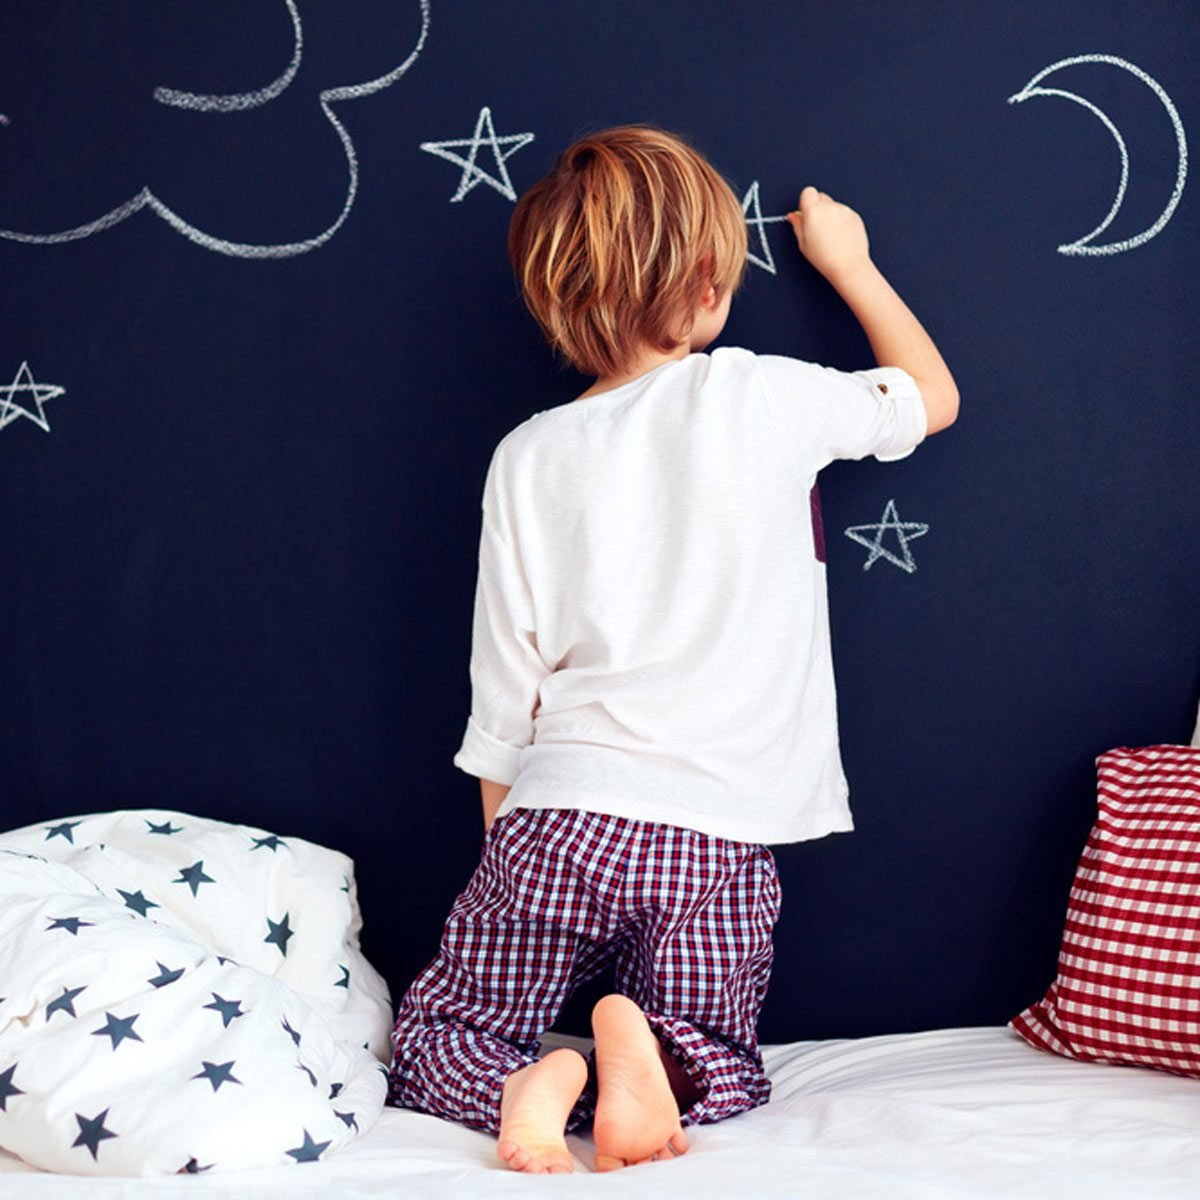 Turn a wall into a chalkboard